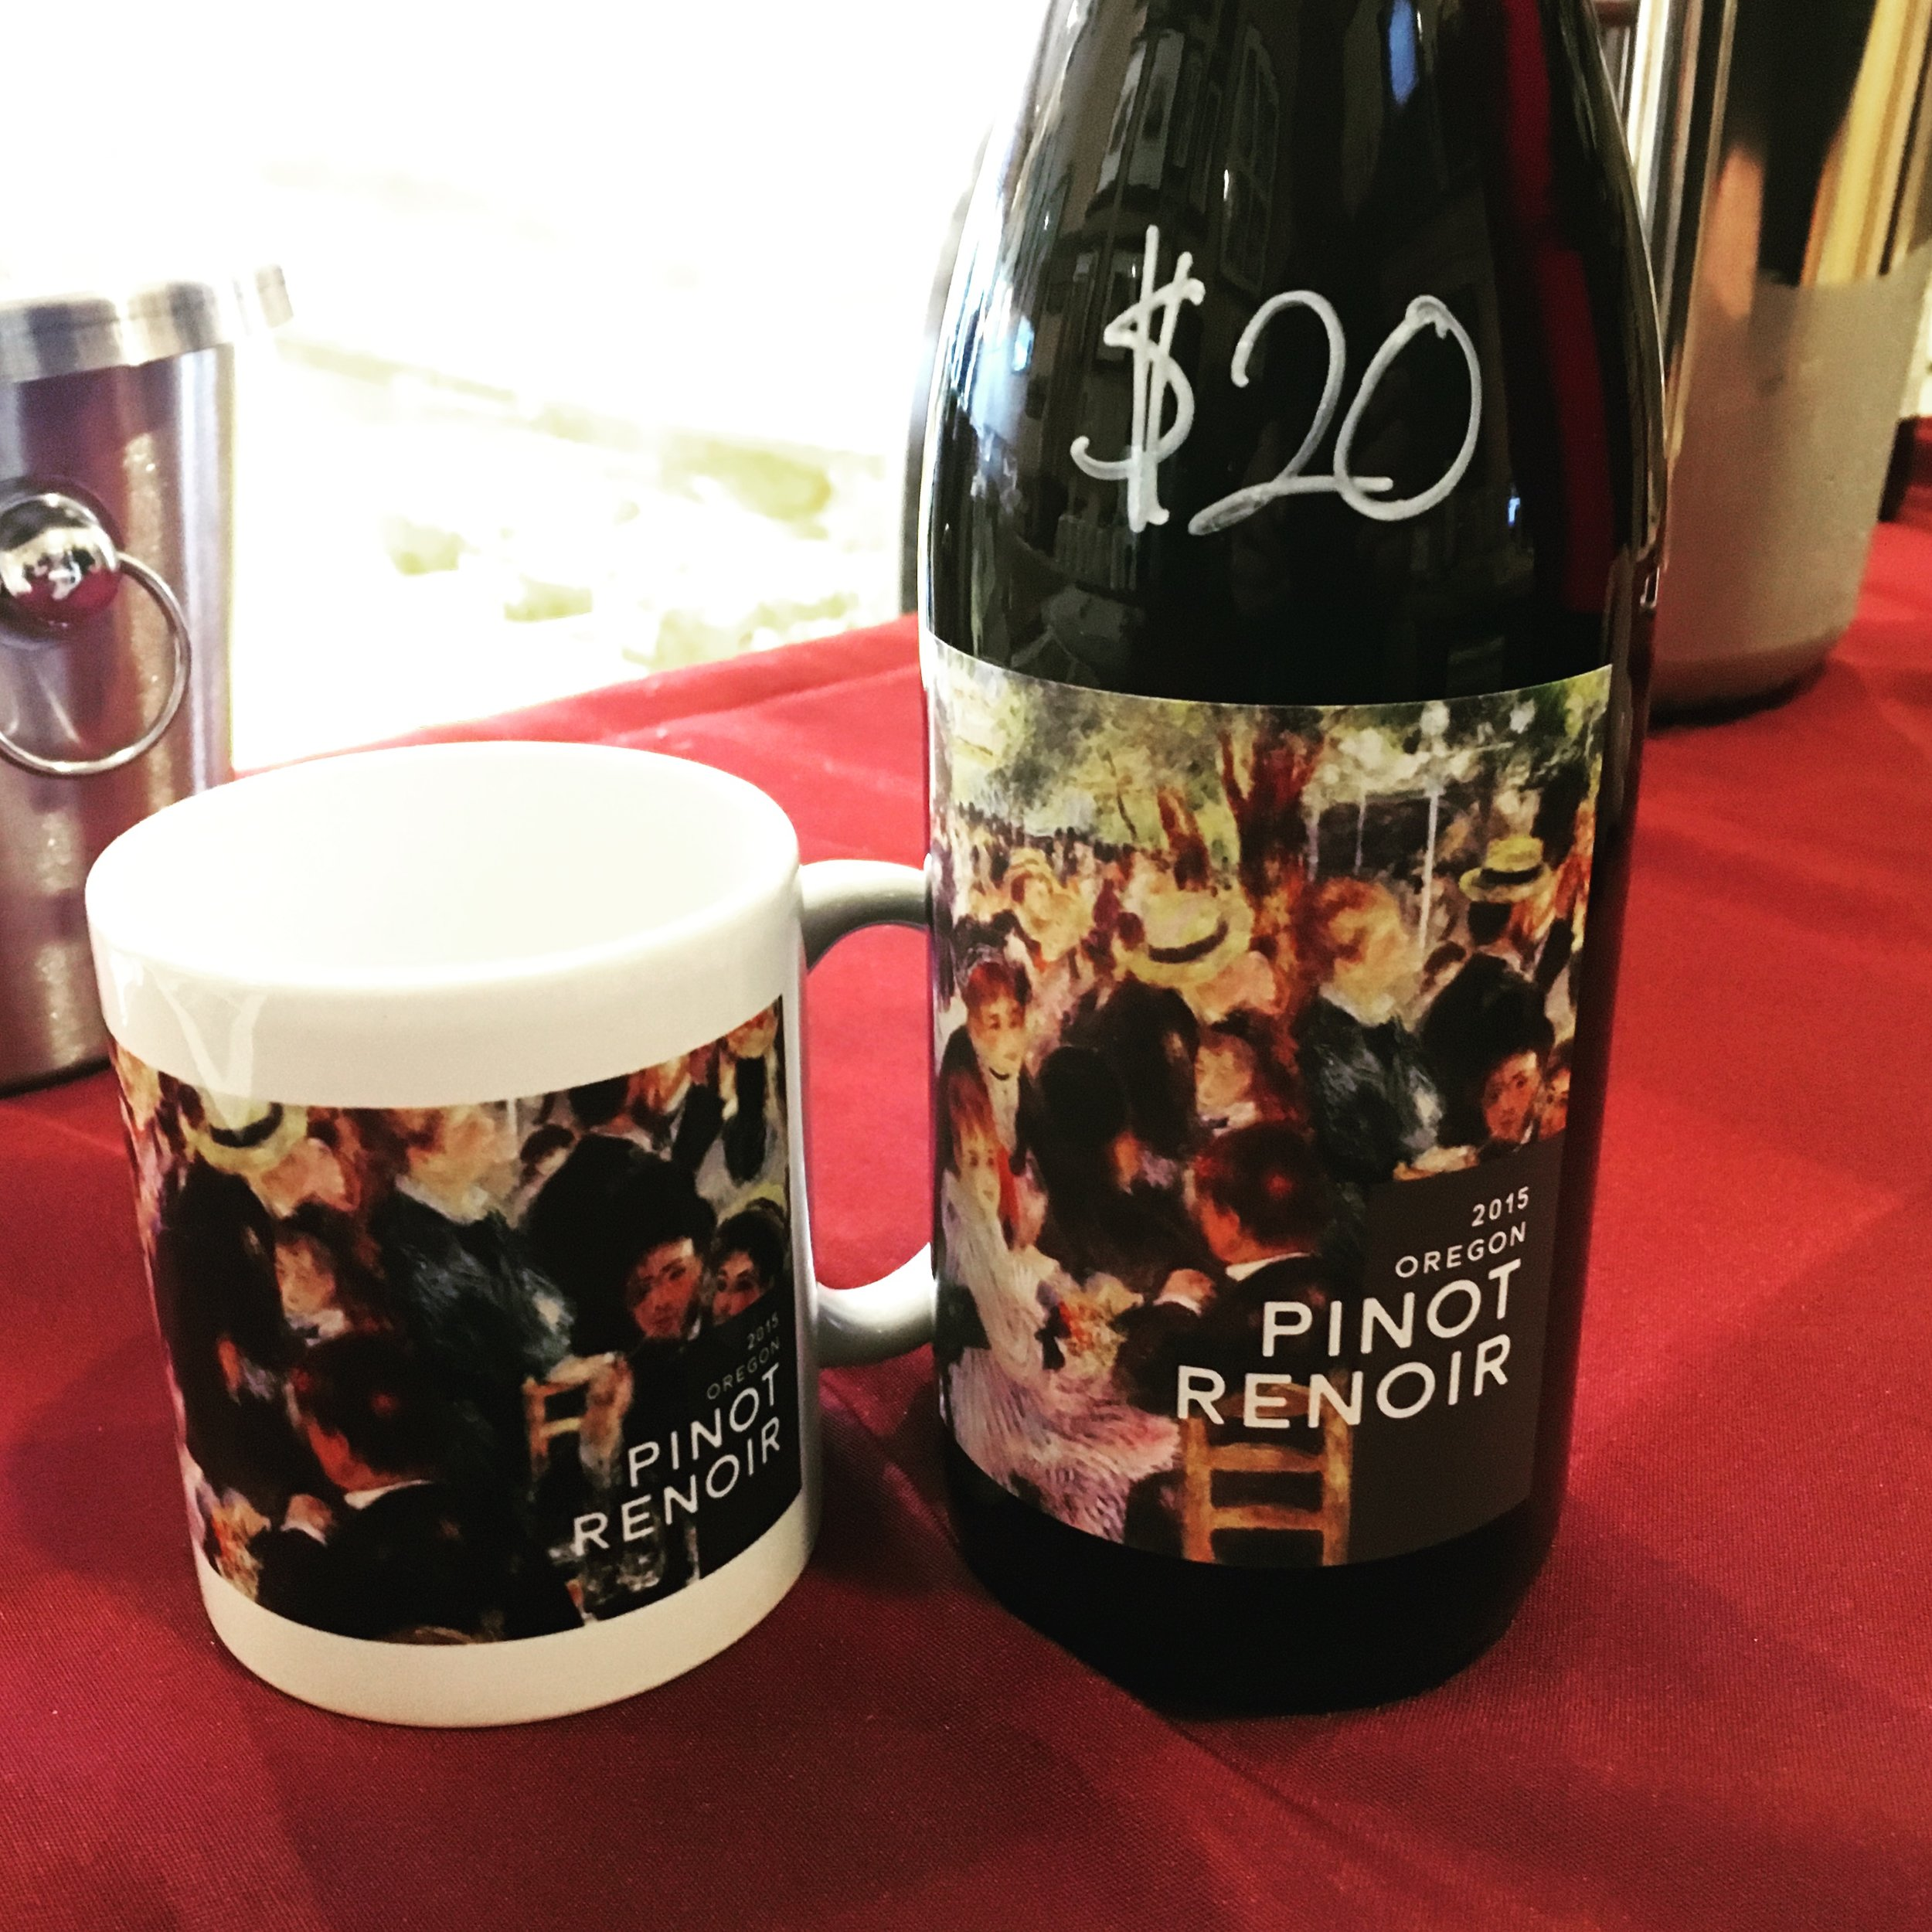 We often bring our wine mugs to tastings. Because it's nobody's business what's in your cup.